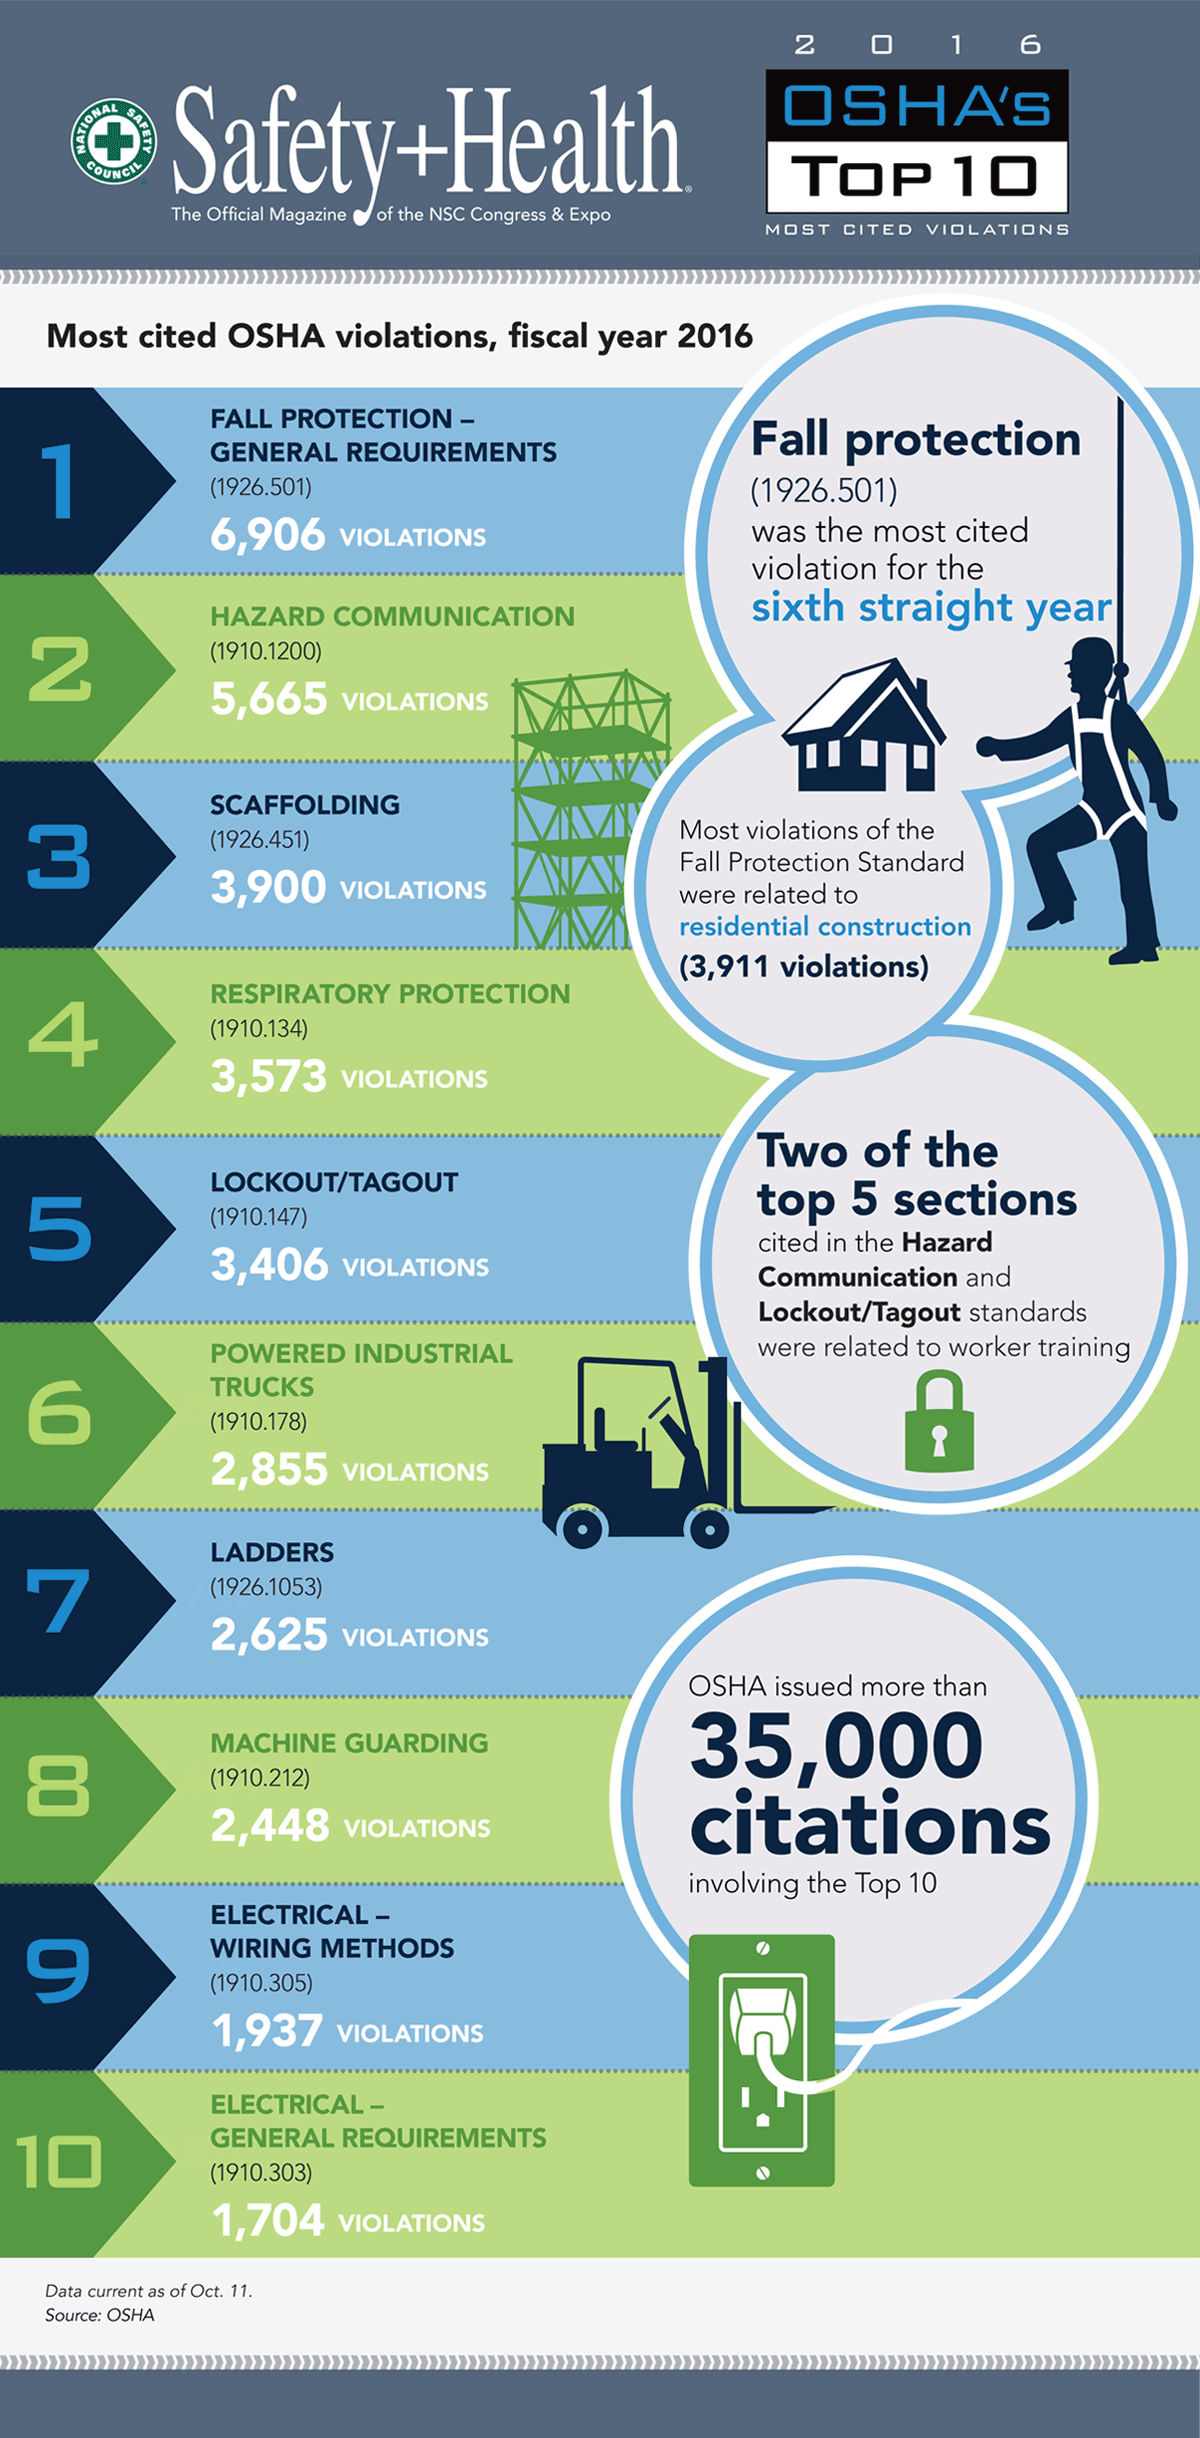 2016 oshas top 10 most cited violations december 2016 safety infographic oshas top 10 list summarized in one image 1betcityfo Images